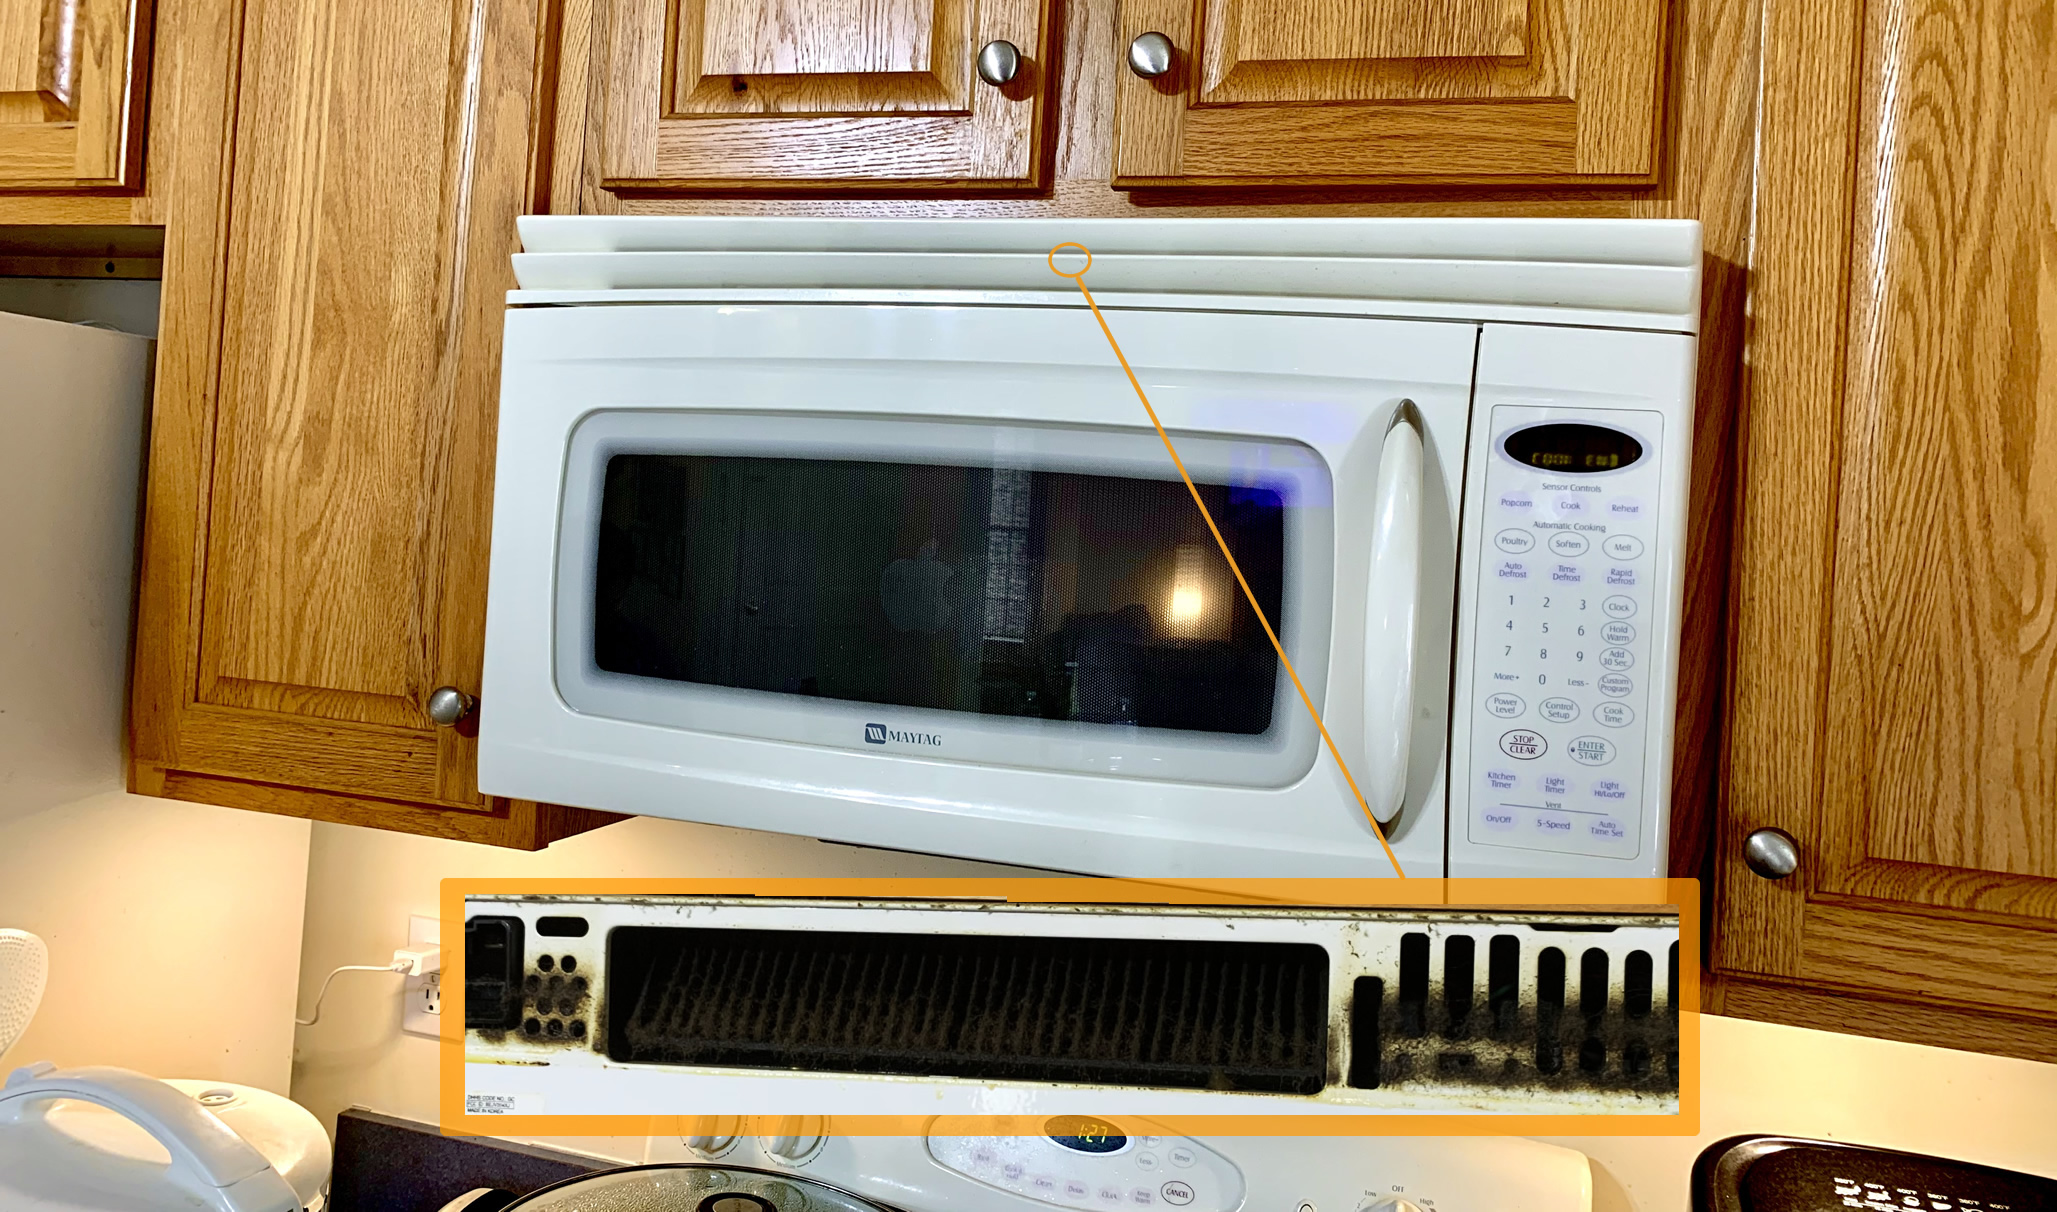 Microwave With Exhaust Fan Might Have